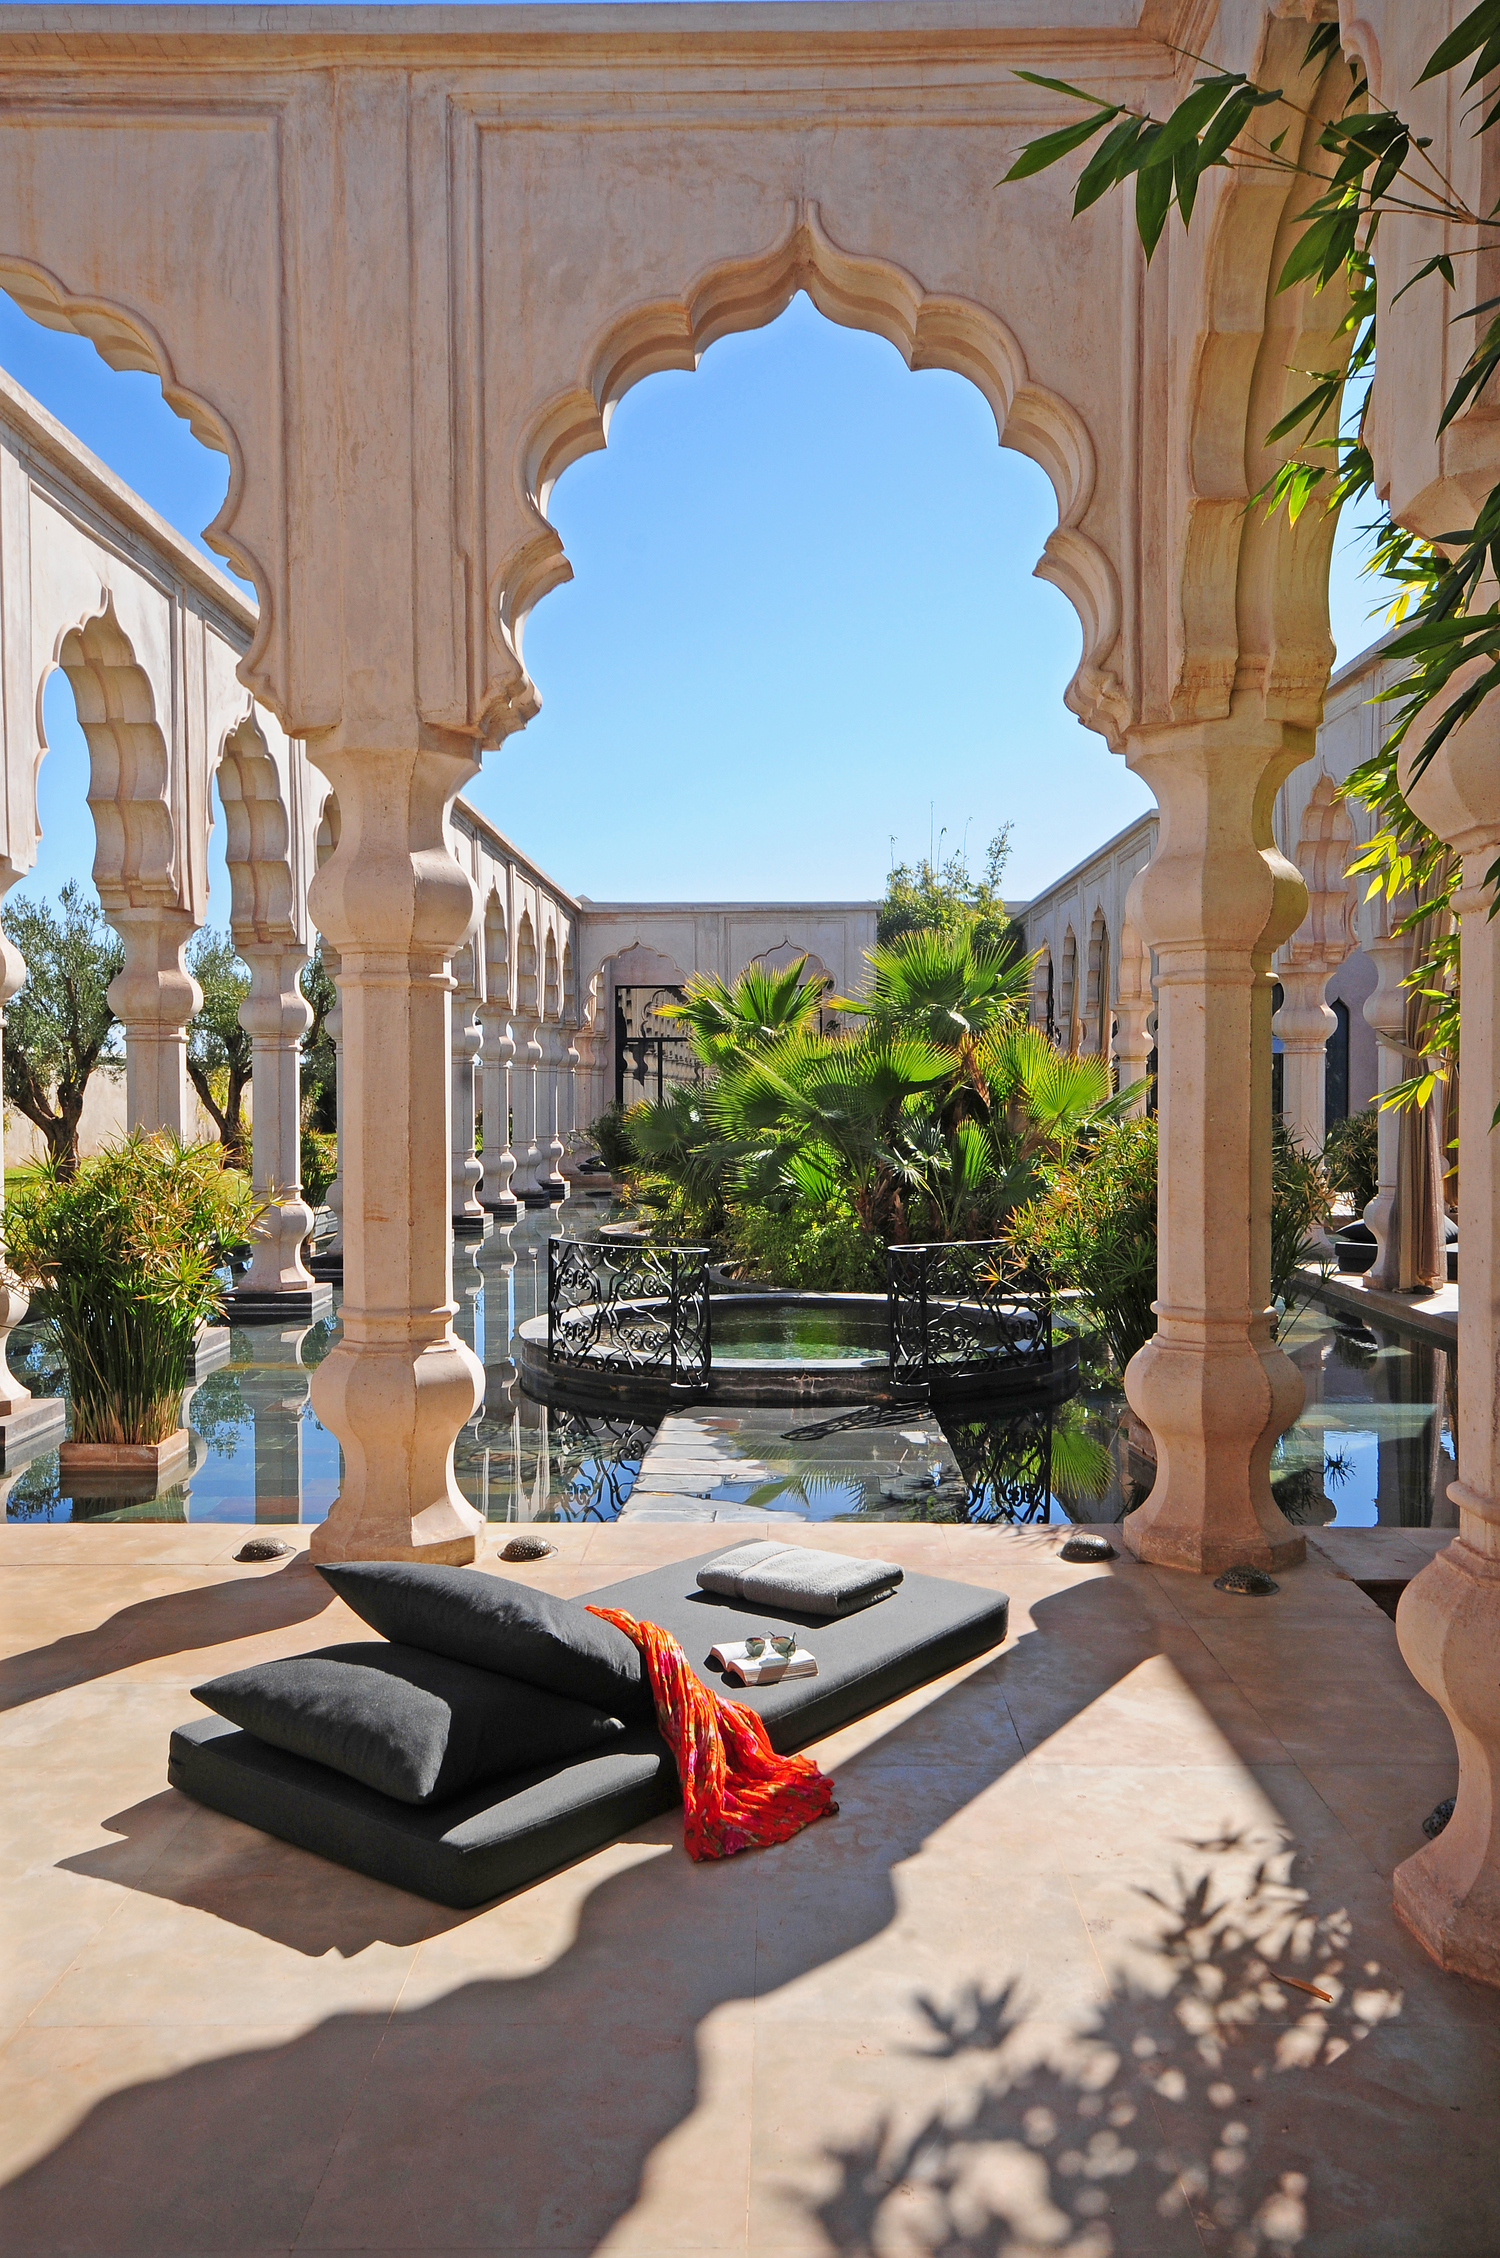 Luxury Hotel Palais Namaskar 5* Marrakech Morocco outside